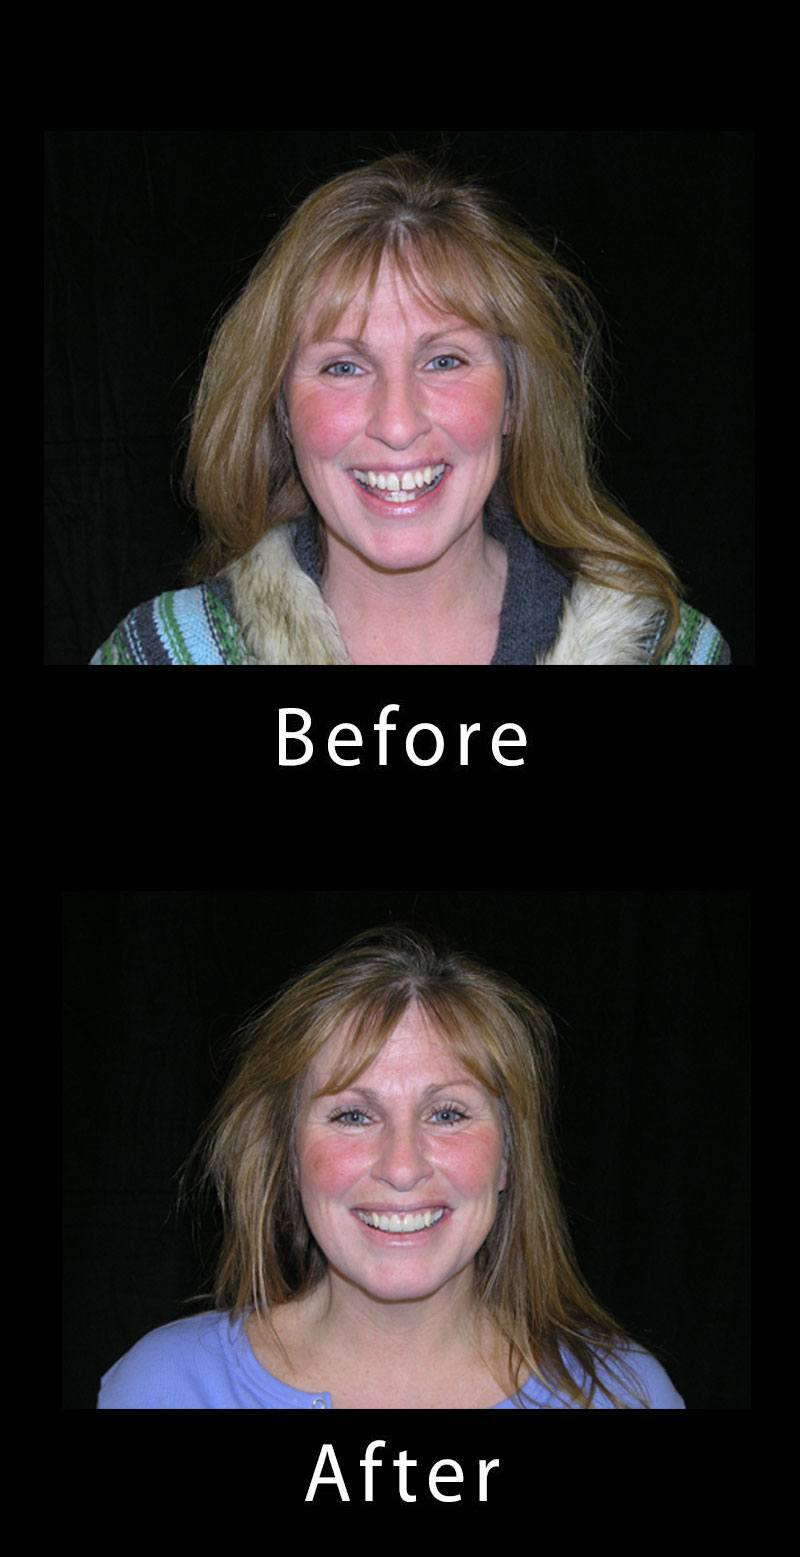 Smile Makeover Before After Image